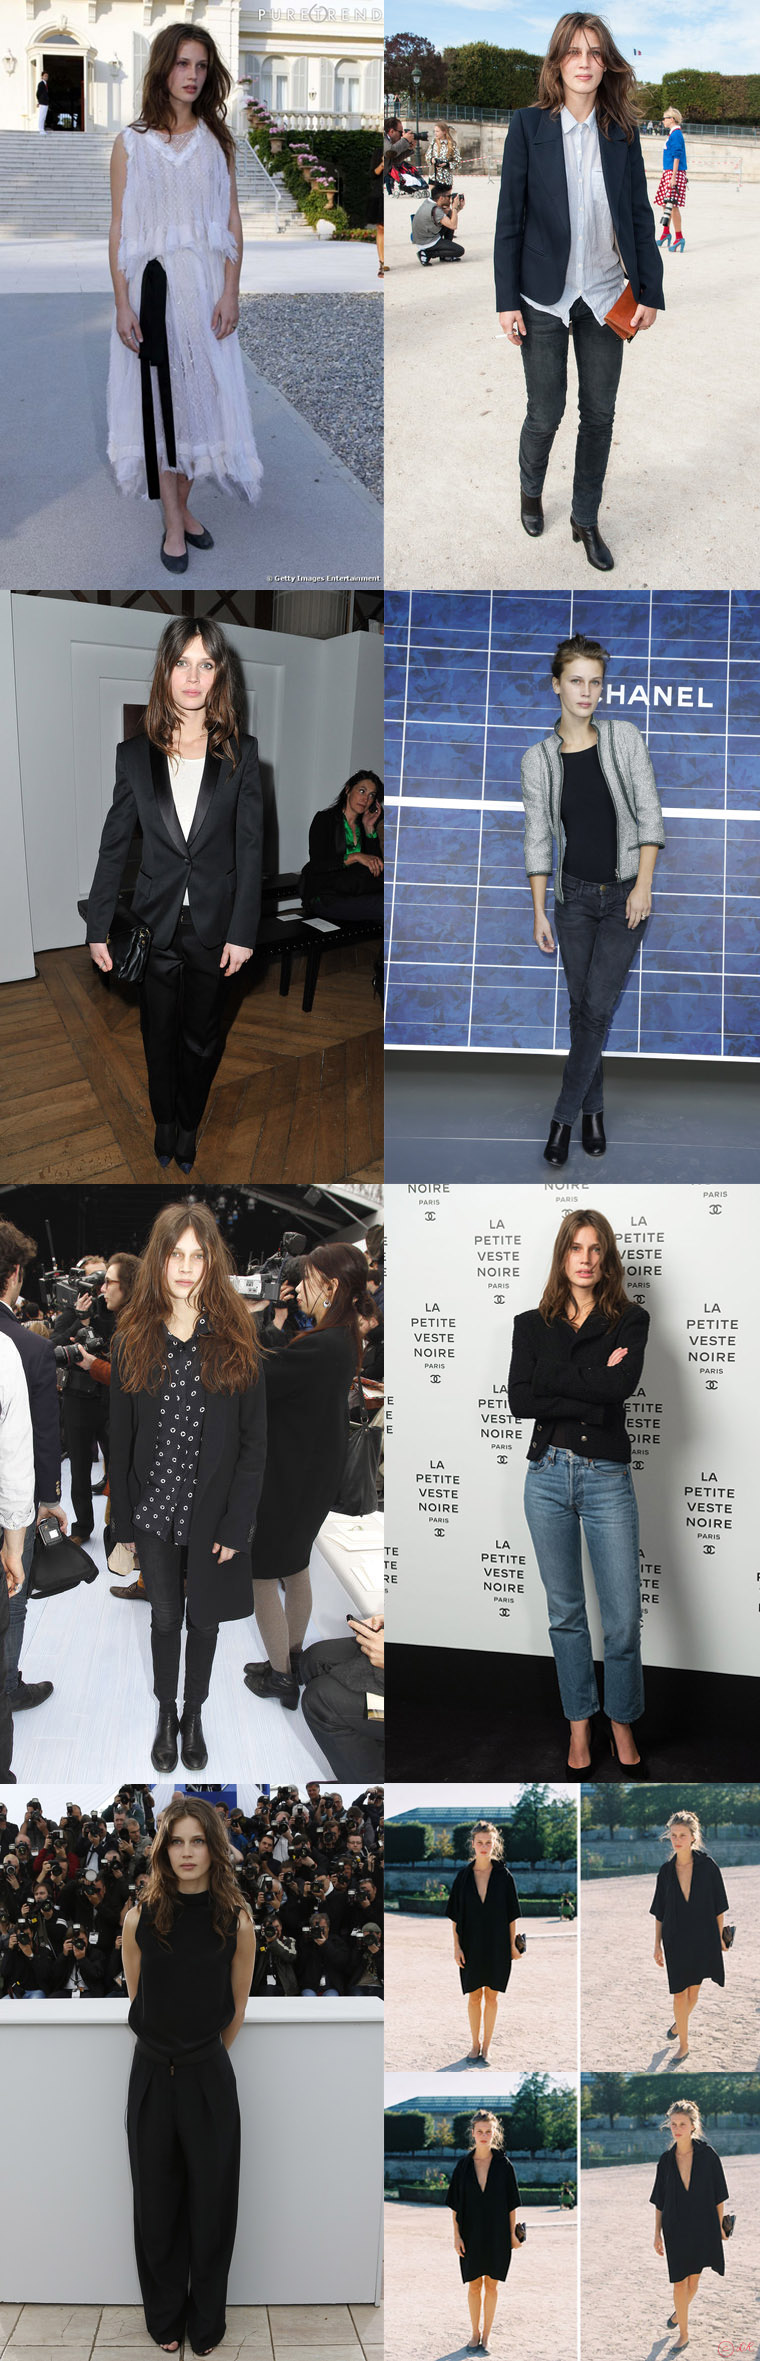 Marine-Vacth-who-s-that-girl-look